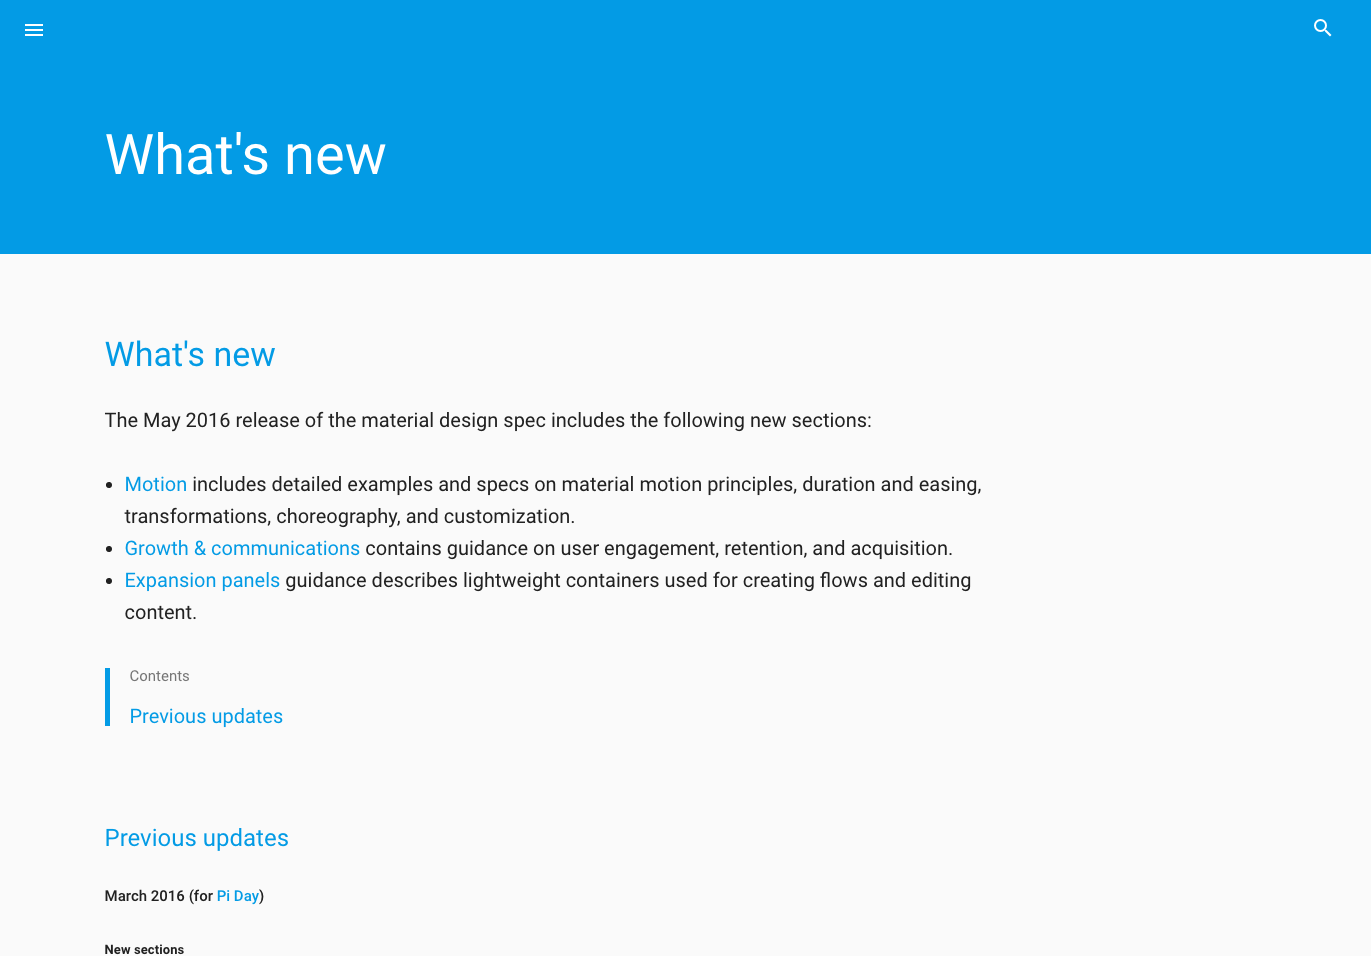 The material design team publishes a handy changelog within its style guide so users can easily learn about the latest updates and improvements to the system.